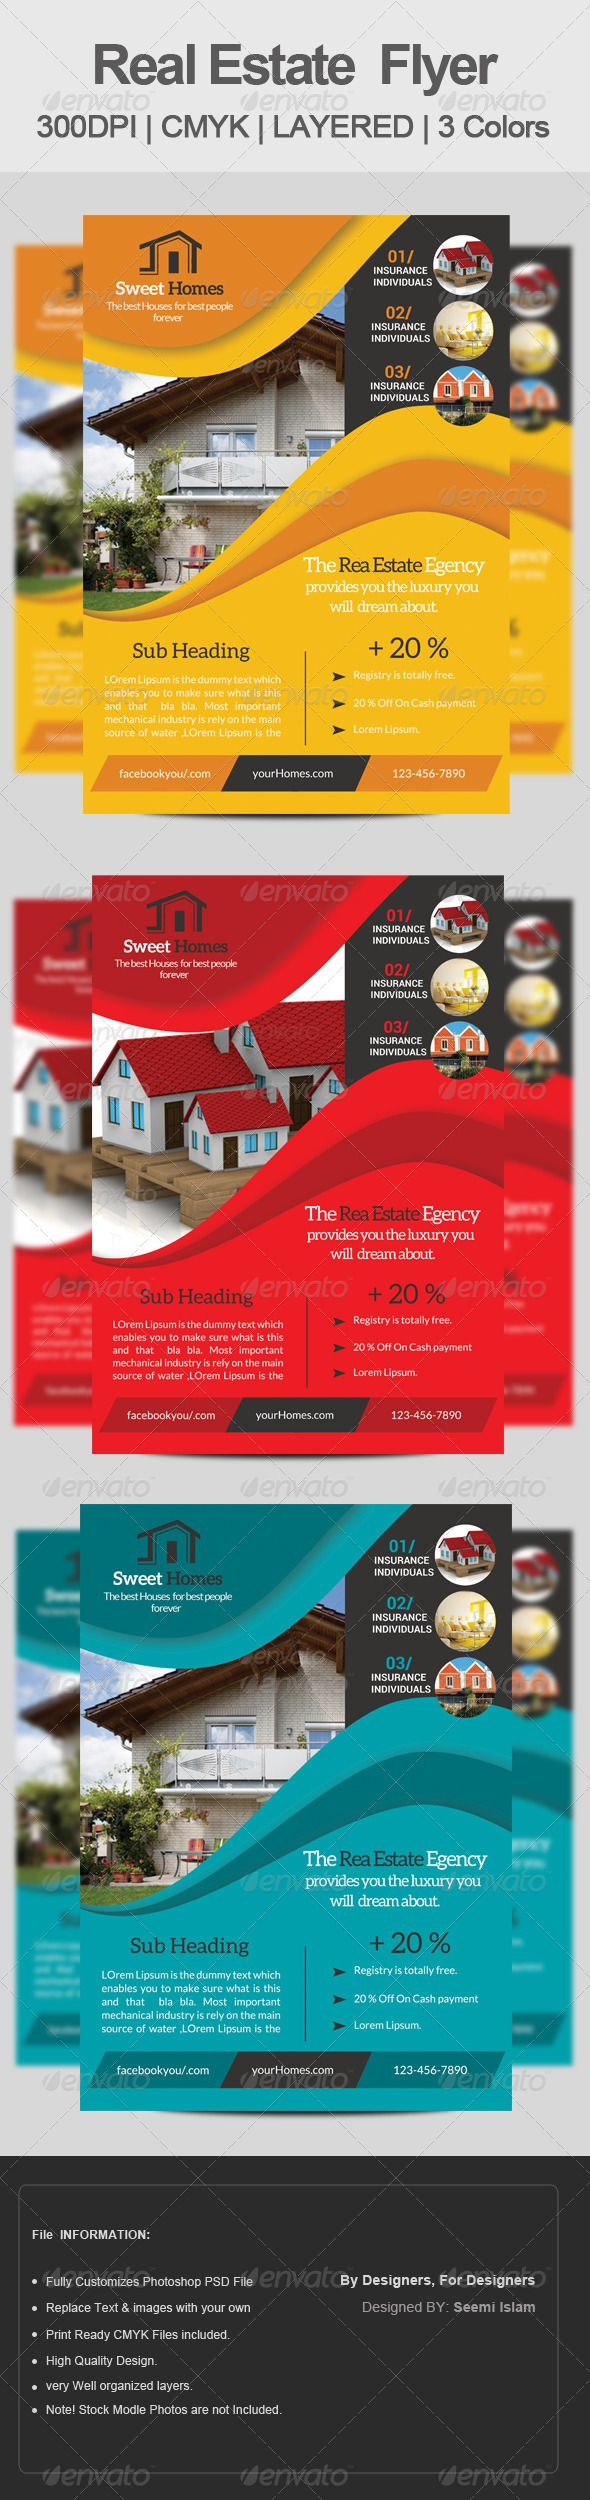 best images about marketing design ideas denver simple real estate flyer template